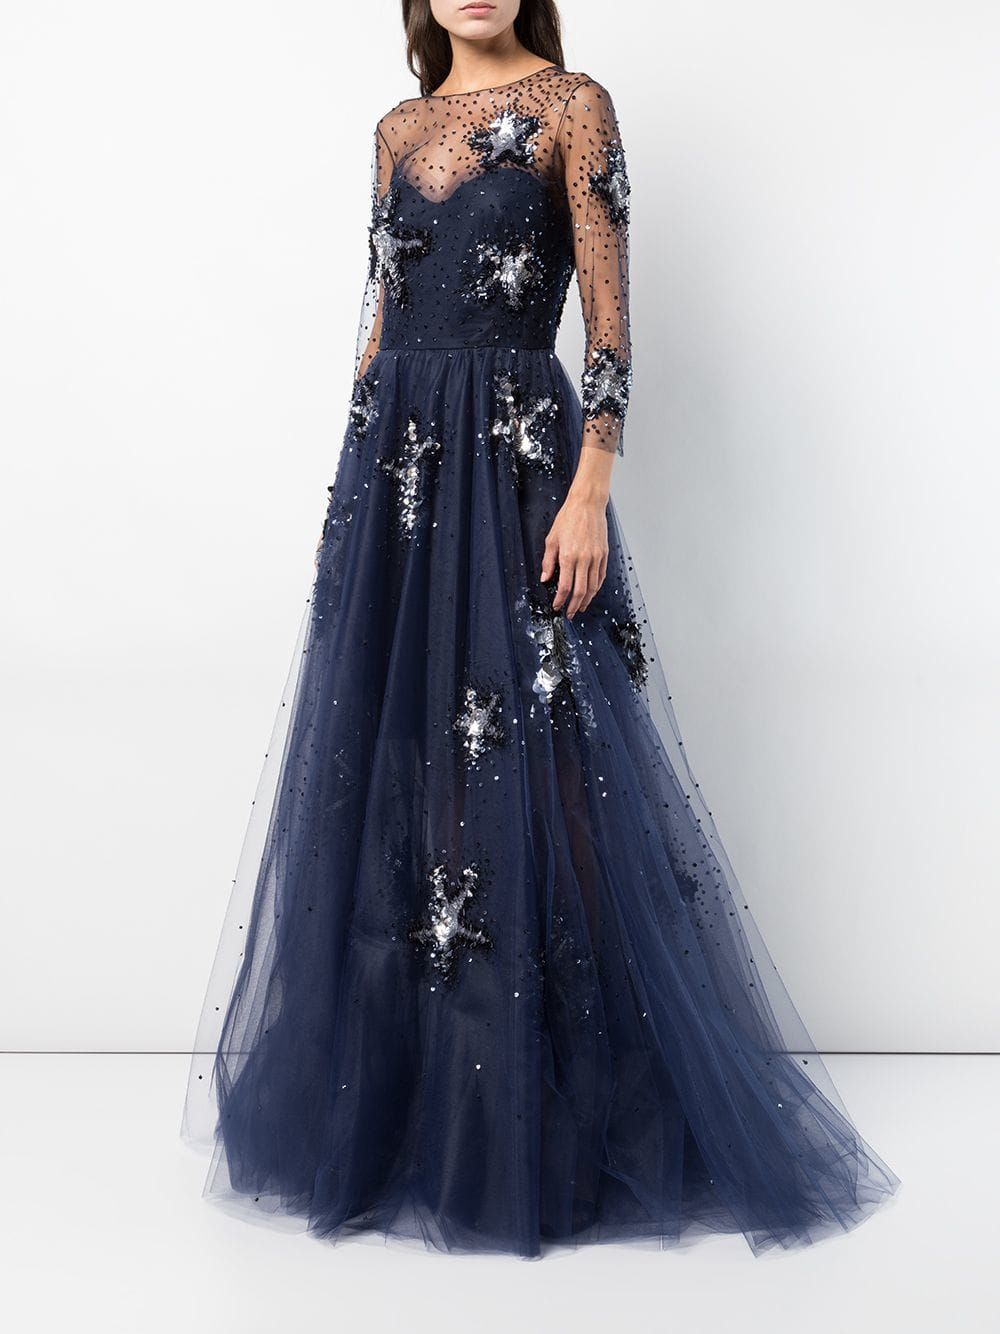 Oscar de la renta sheer sleeve starfish embroidered gown in À